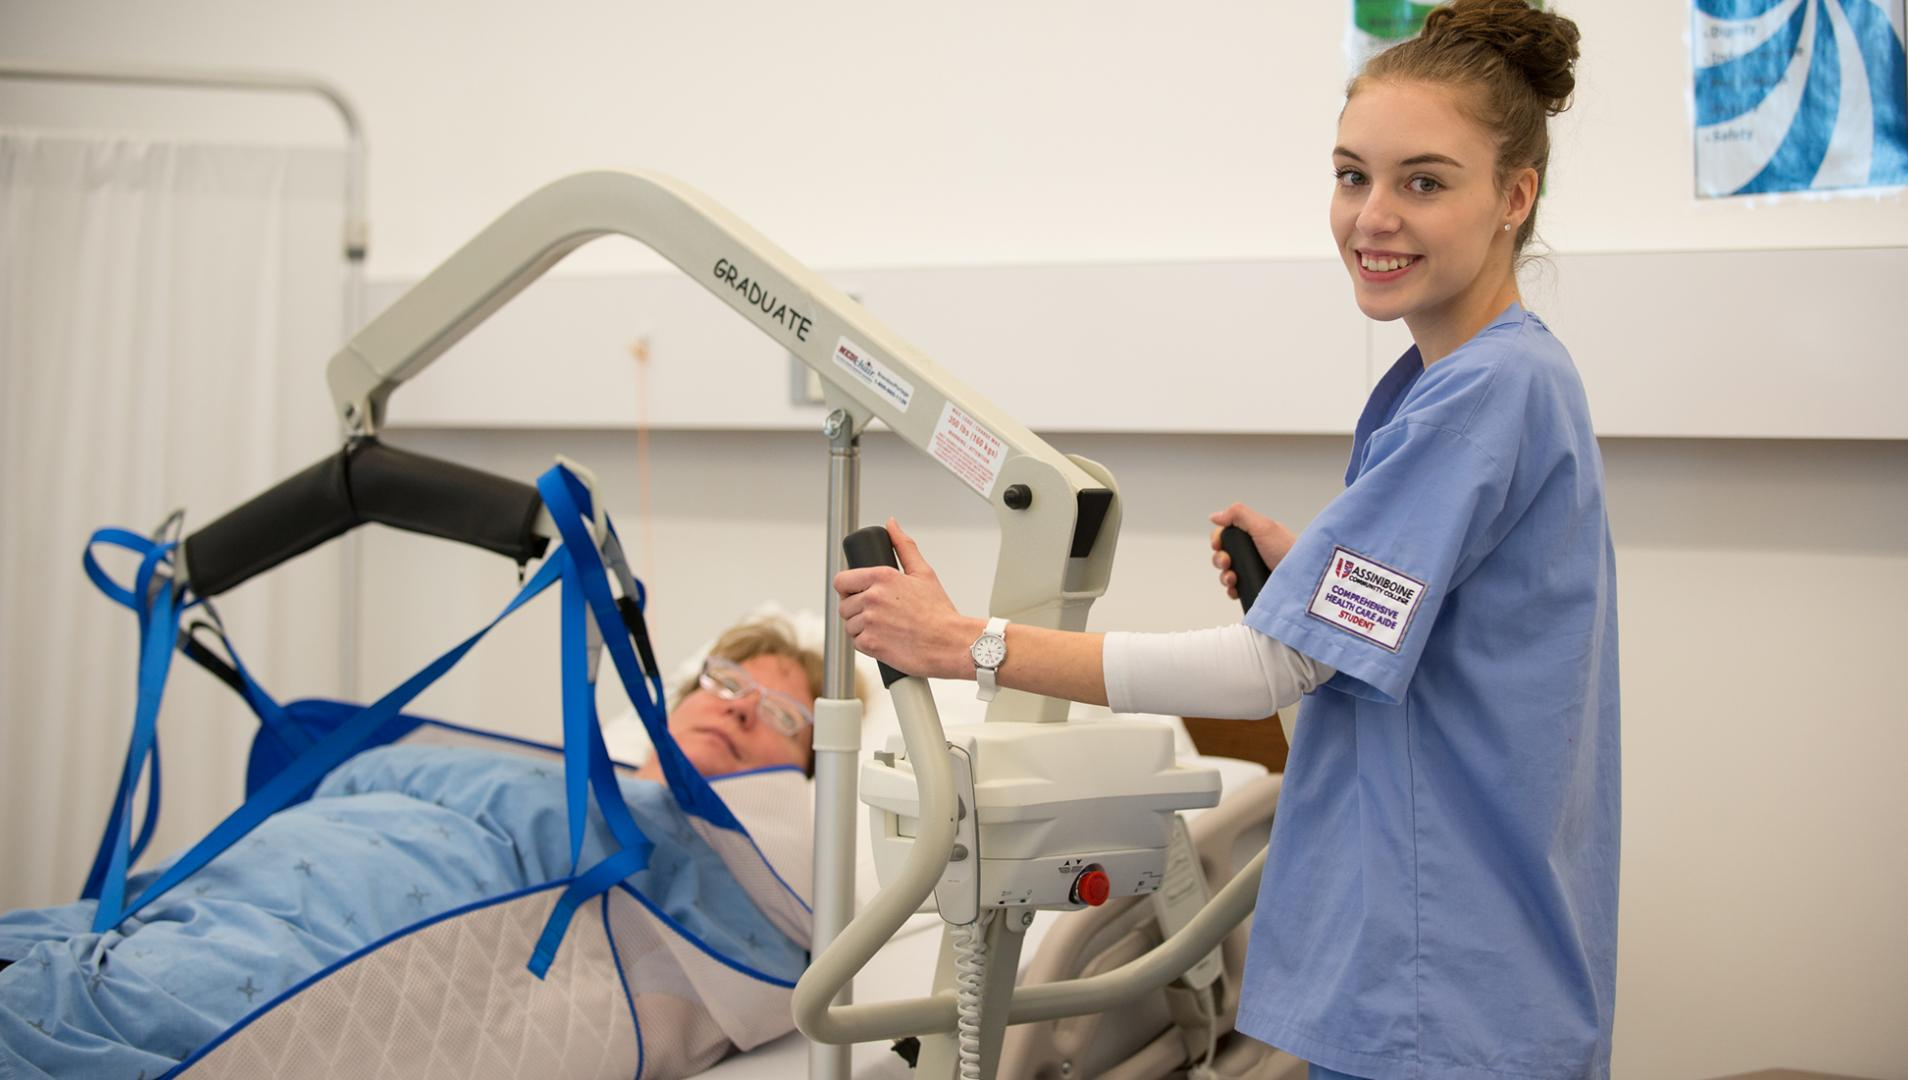 Comprehensive Health Care Aide student working with a patient